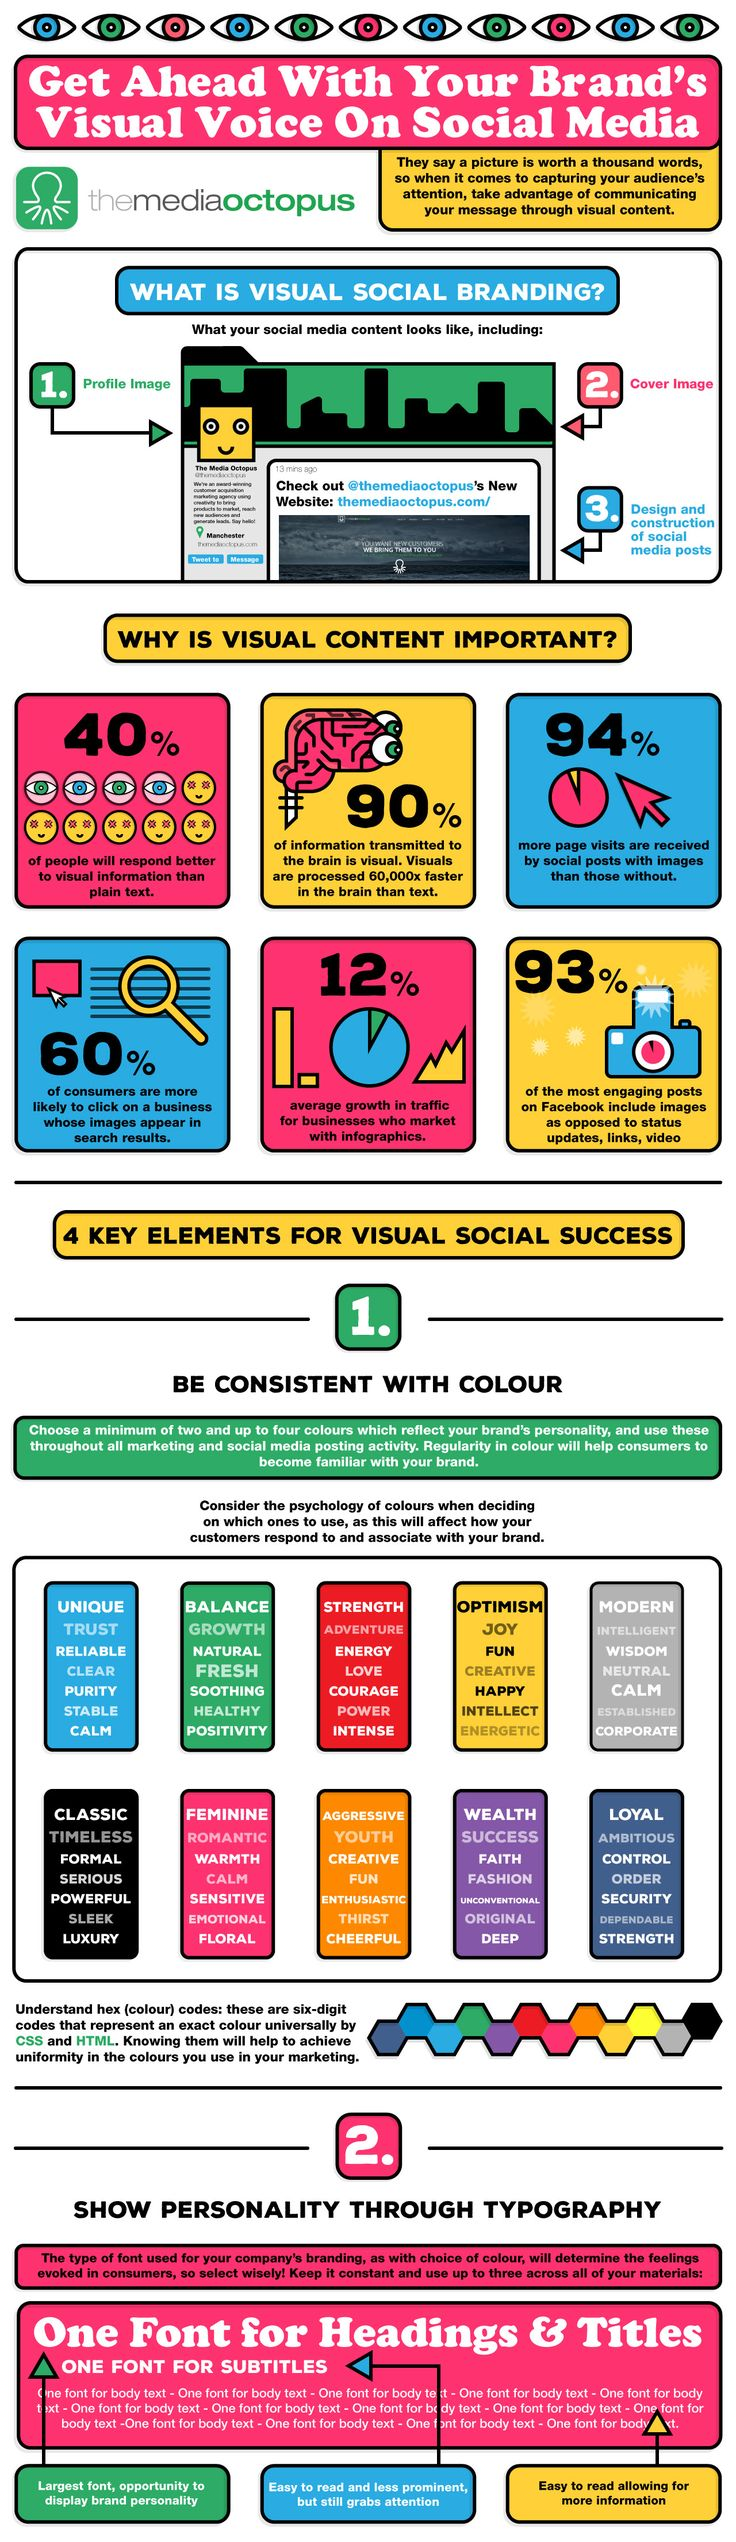 #Socialmedia - 4 Tips for Stunning Social Media Visuals (Infographic)